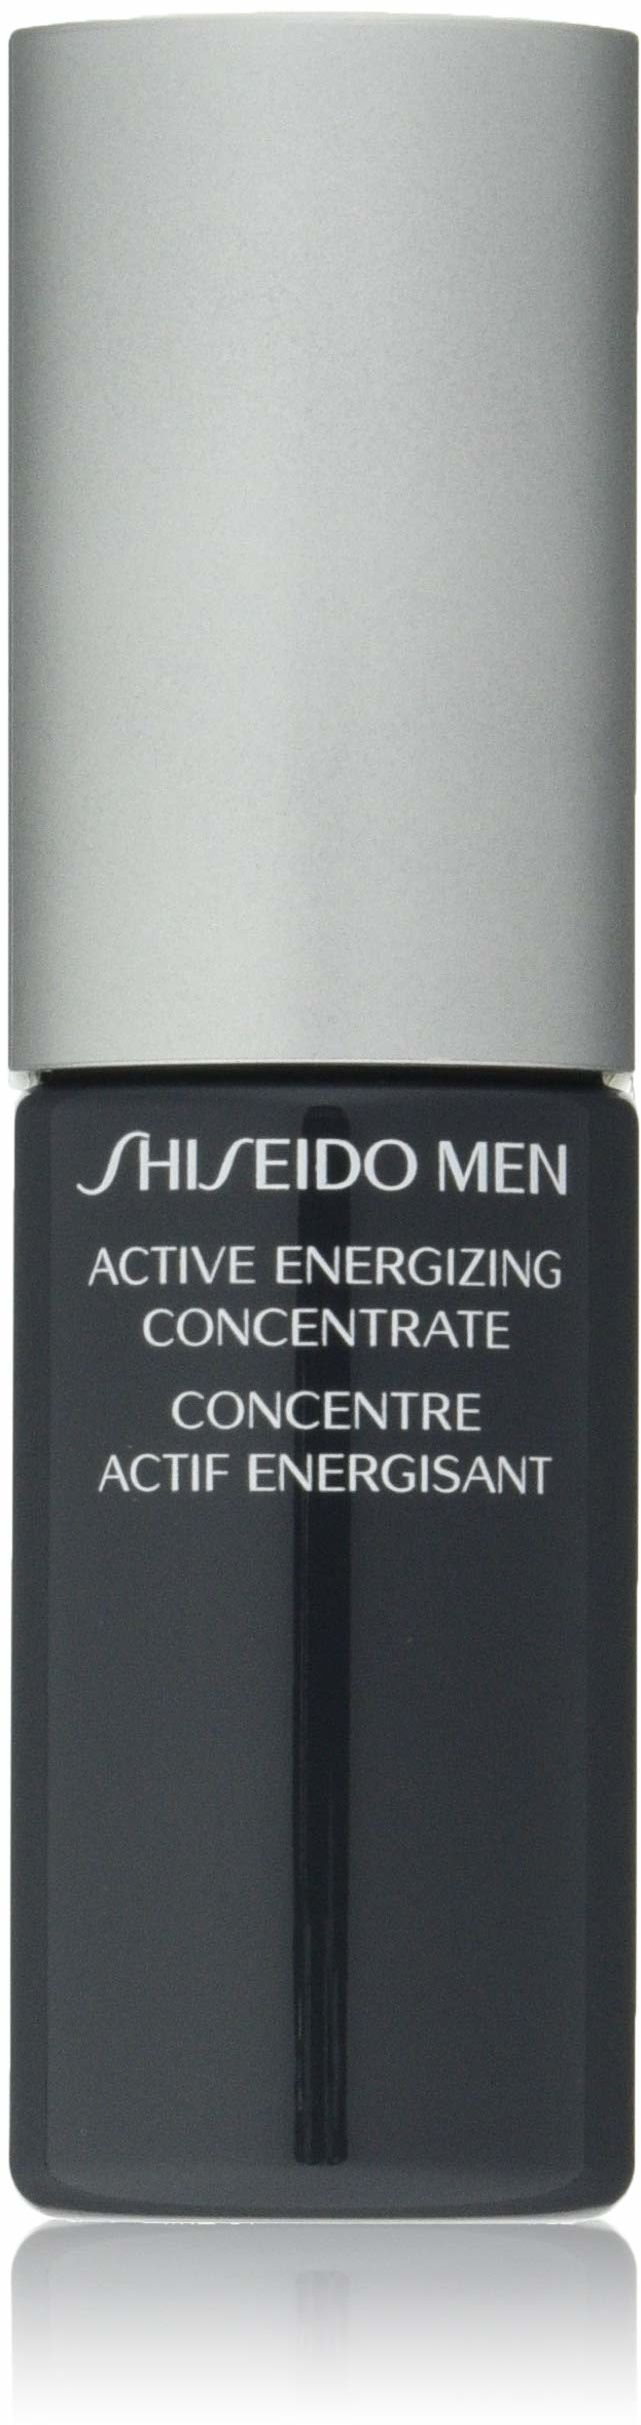 Shiseido Men Active Energizing Concentrate, 50 ml